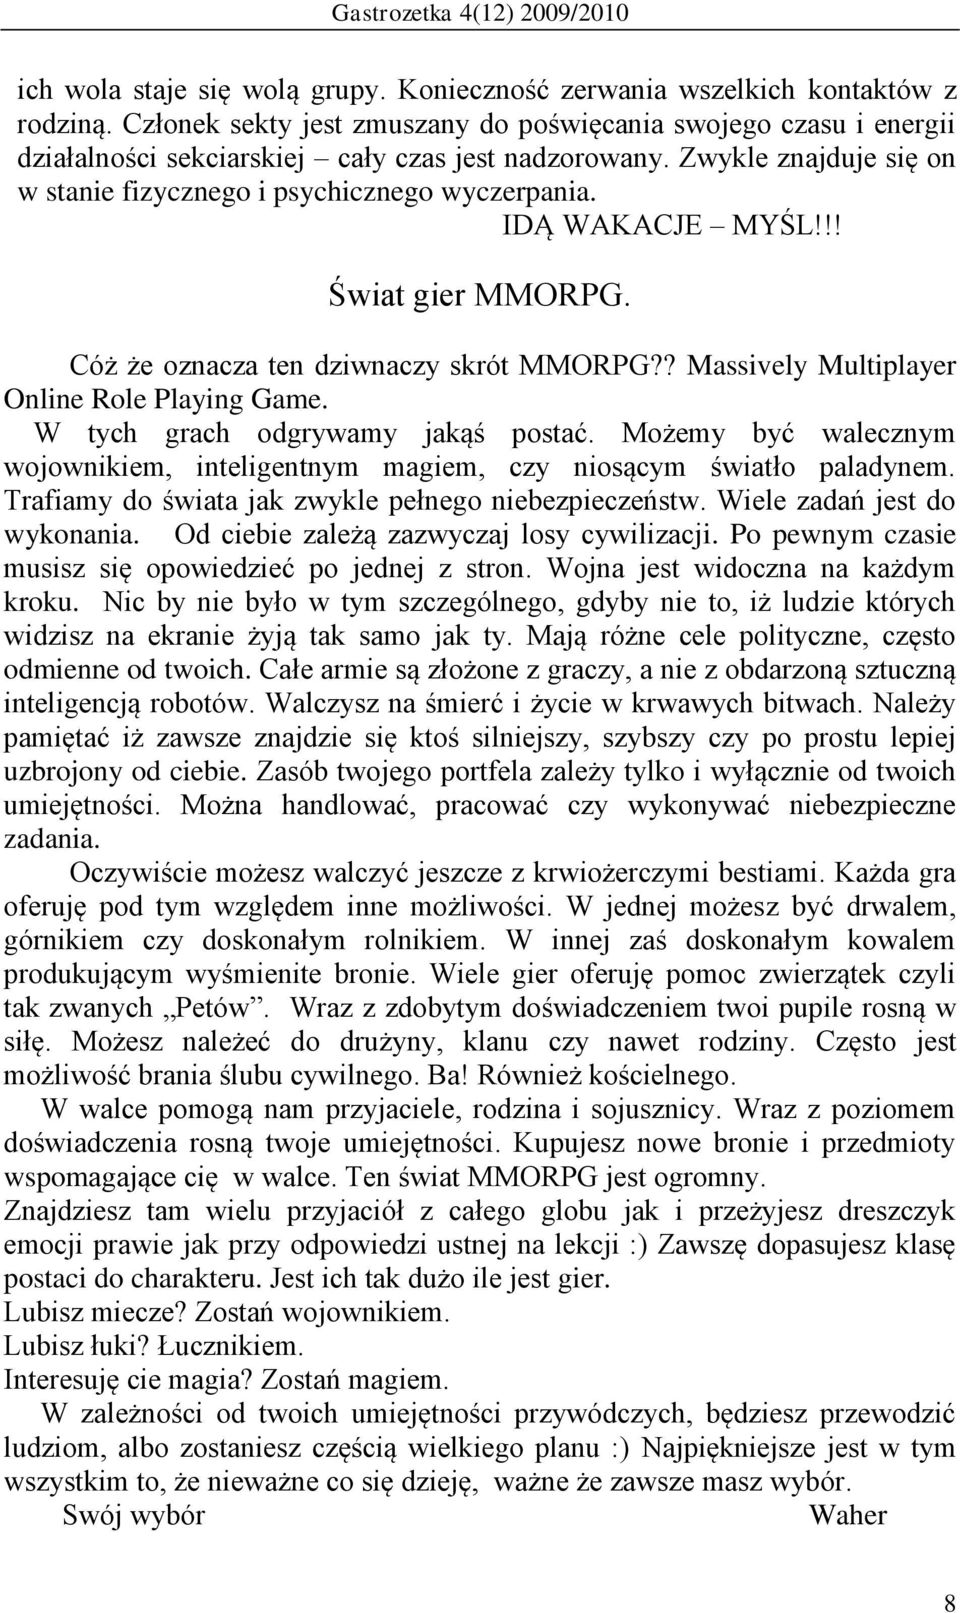 IDĄ WAKACJE MYŚL!!! Świat gier MMORPG. Cóż że oznacza ten dziwnaczy skrót MMORPG?? Massively Multiplayer Online Role Playing Game. W tych grach odgrywamy jakąś postać.